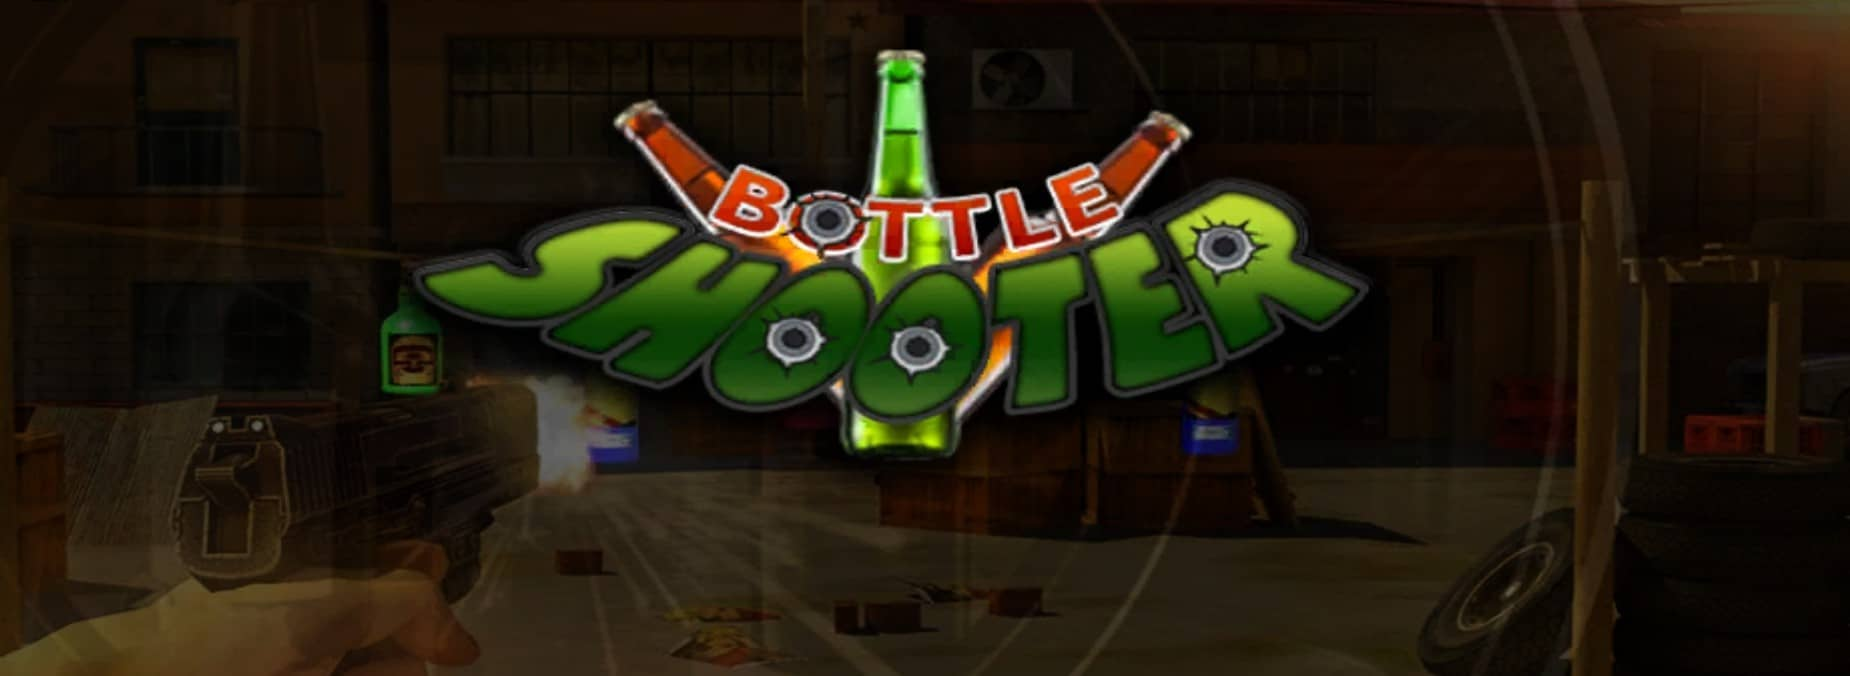 Download Real Bottle Shooter Game APK – for Android 6